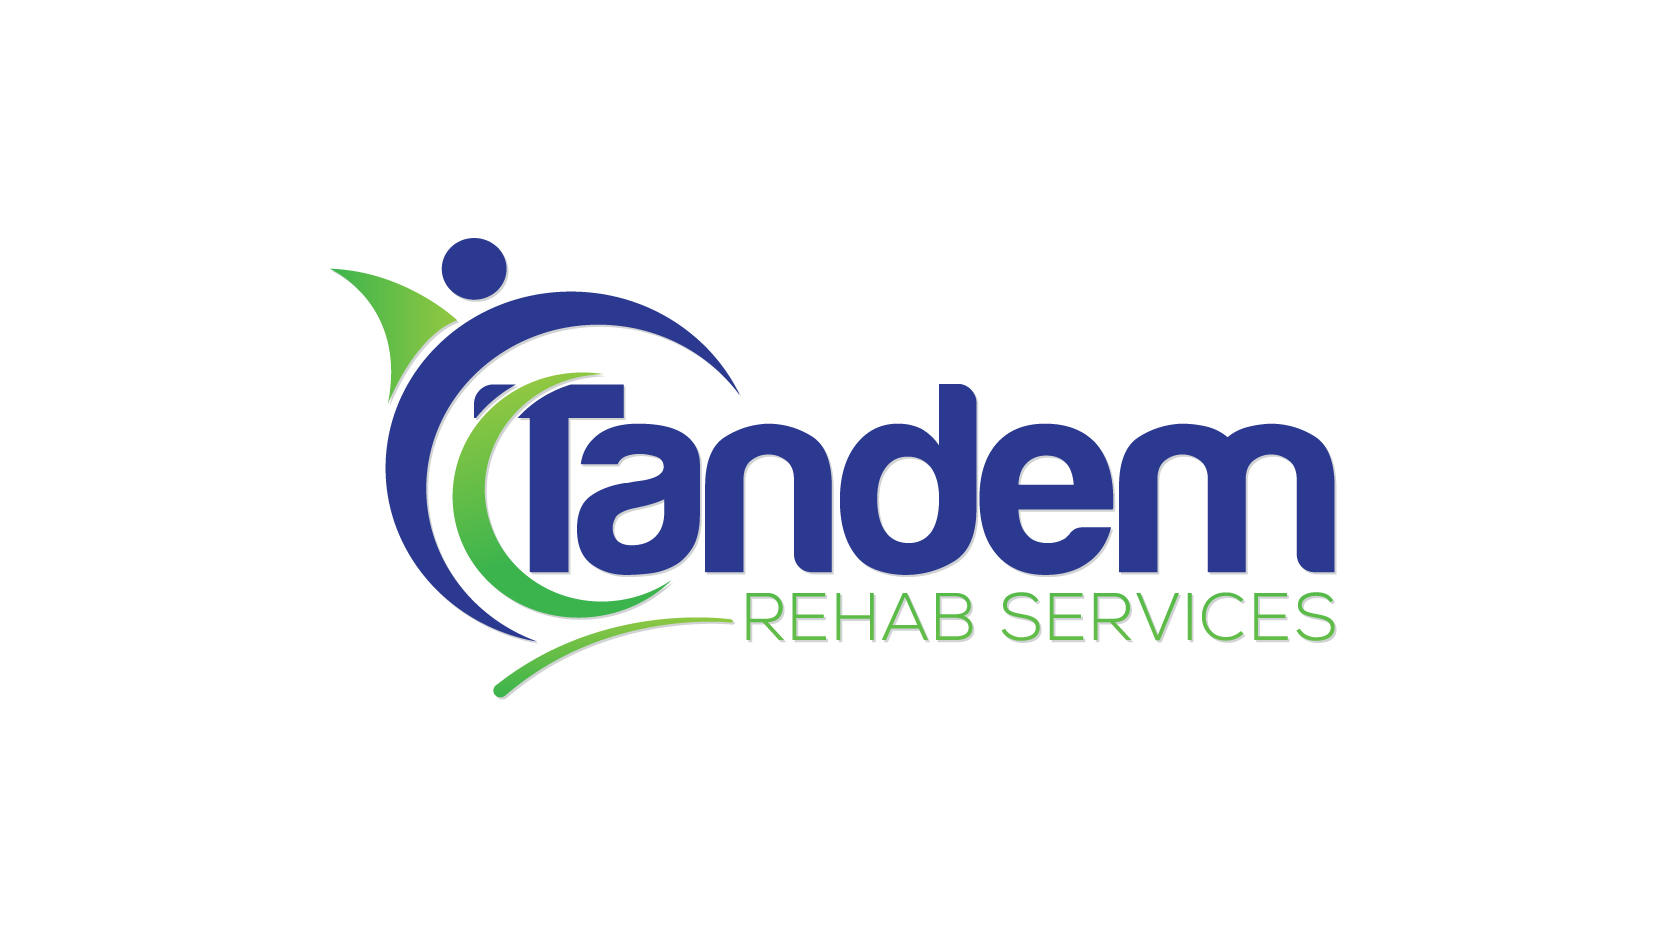 Tandem Rehab Services image 0